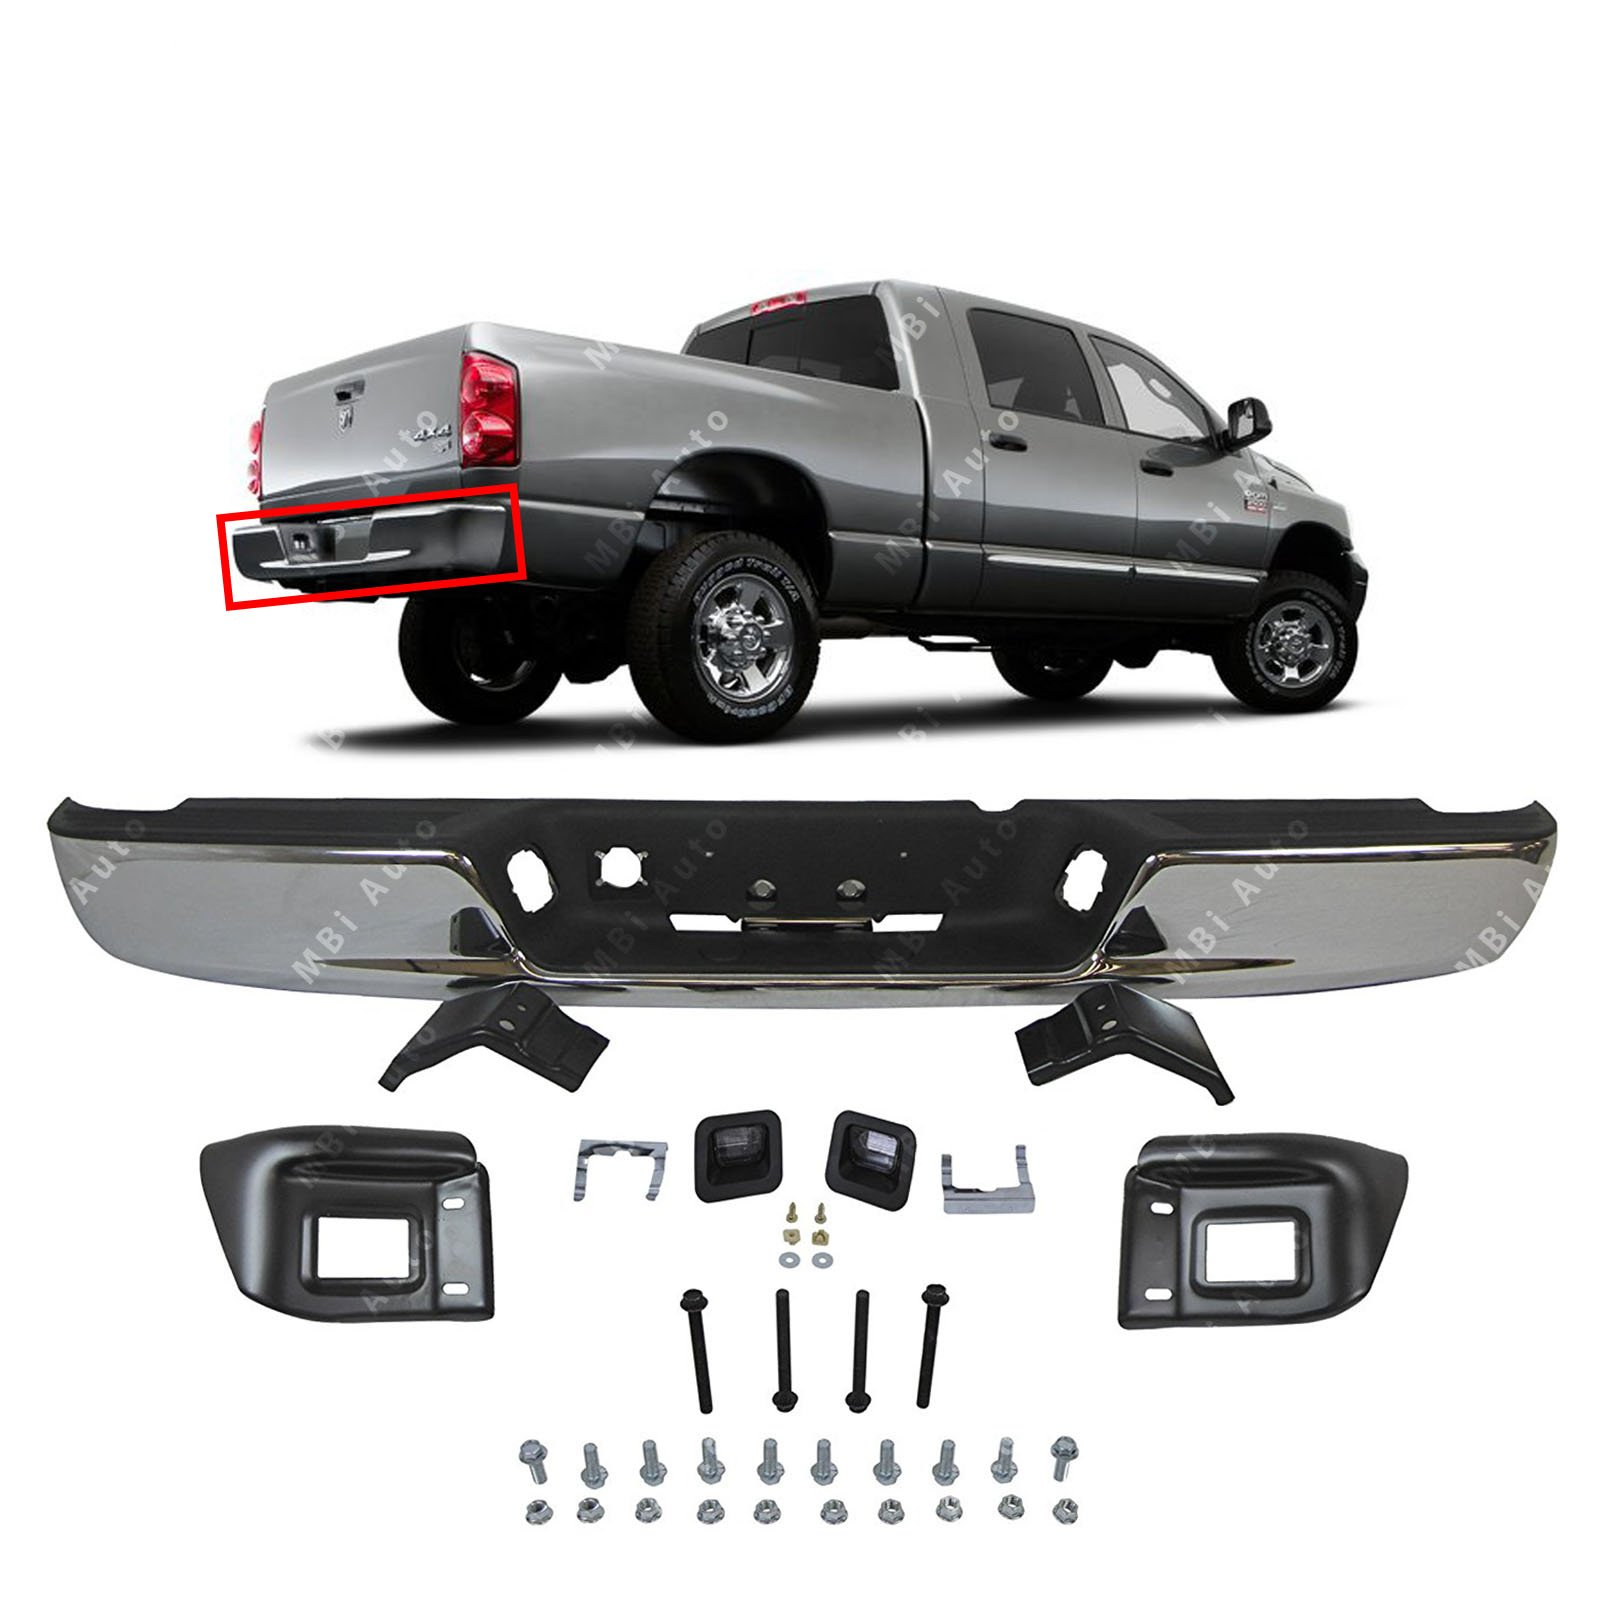 MBI AUTO - Chrome Steel, Rear Bumper Assembly for 2004-2008 Dodge RAM 1500 & 2004-2009 Dodge RAM 2500 3500 Pickup, CH1103111 by MBI AUTO